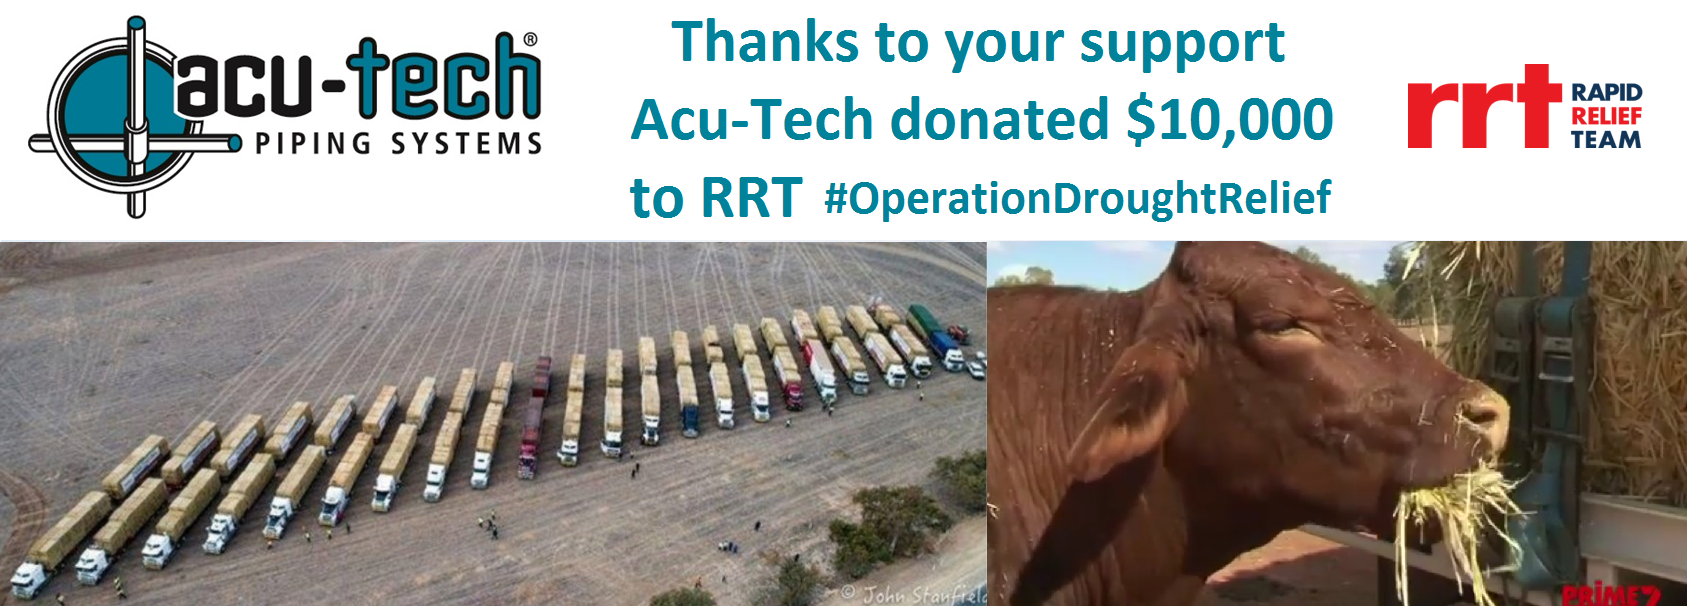 Acu-Tech Supports RRT Drought Relief Effort